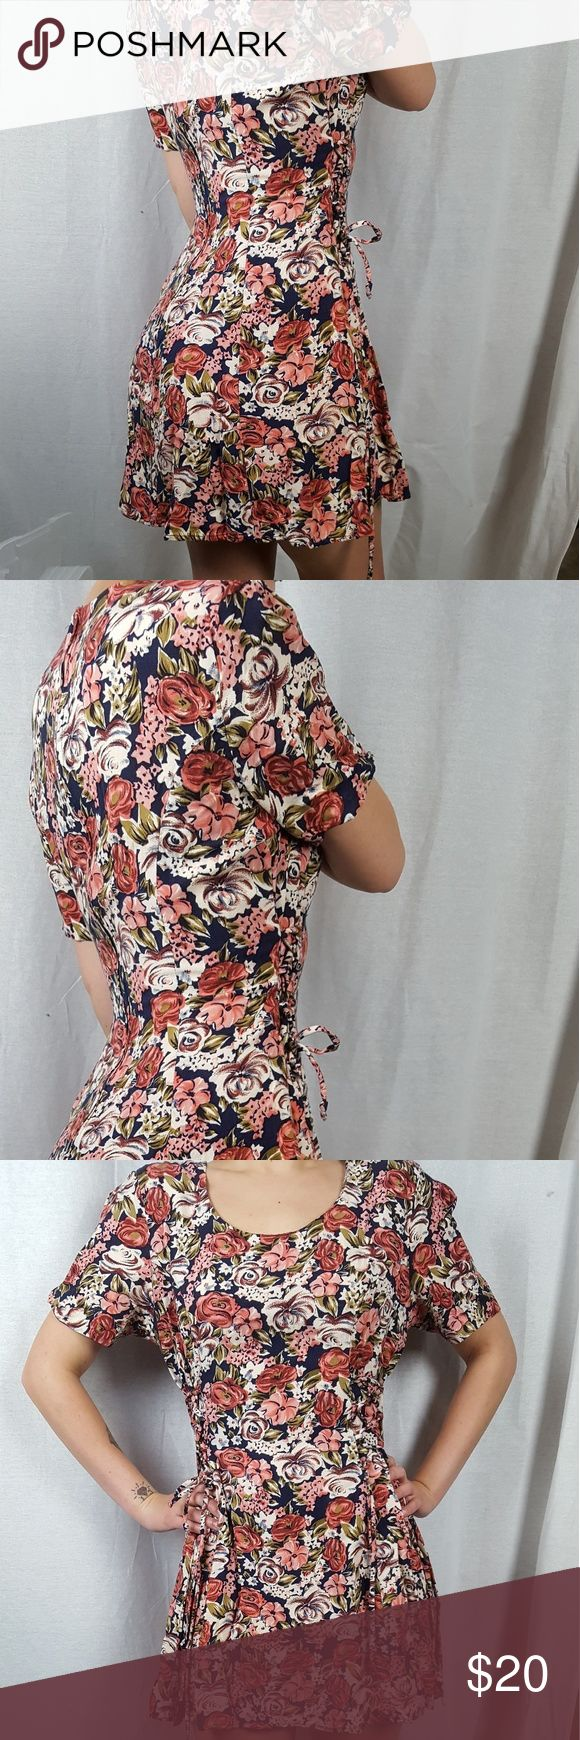 Adorable Orange and Blue Floral Print Dress One of my favorite dresses, it's super cute and super comfy. I can't remember exactly what store I bought it from, and it doesn't have any tags, but it's from an Urban Outfitter or a Pacsun.  It's got a zip in the back and laces on the sides and has a kind of skater dress shape to it. It's in near perfect condition, no tears, wear, or stains.  The price is negotiable. Feel free to make an offer or ask me any questions you may have :) Dresses Mini